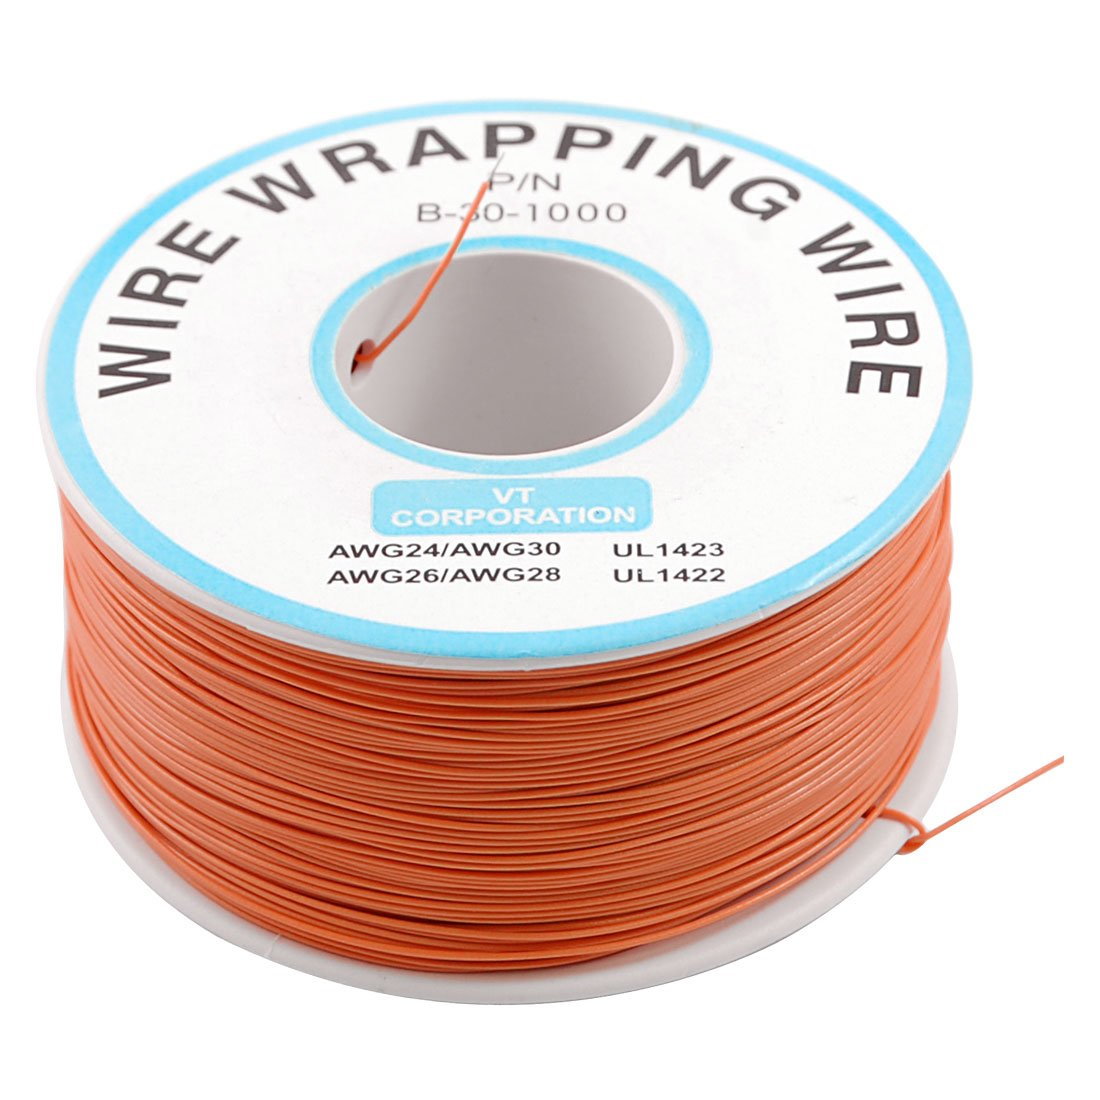 DSHA New Hot PCB Solder Orange Flexible 0.5mm Outside Dia 30AWG Wire Wrapping Wrap 1000Ft white flexible 30awg wire cable high temperature resistant wrapping wrap 315m